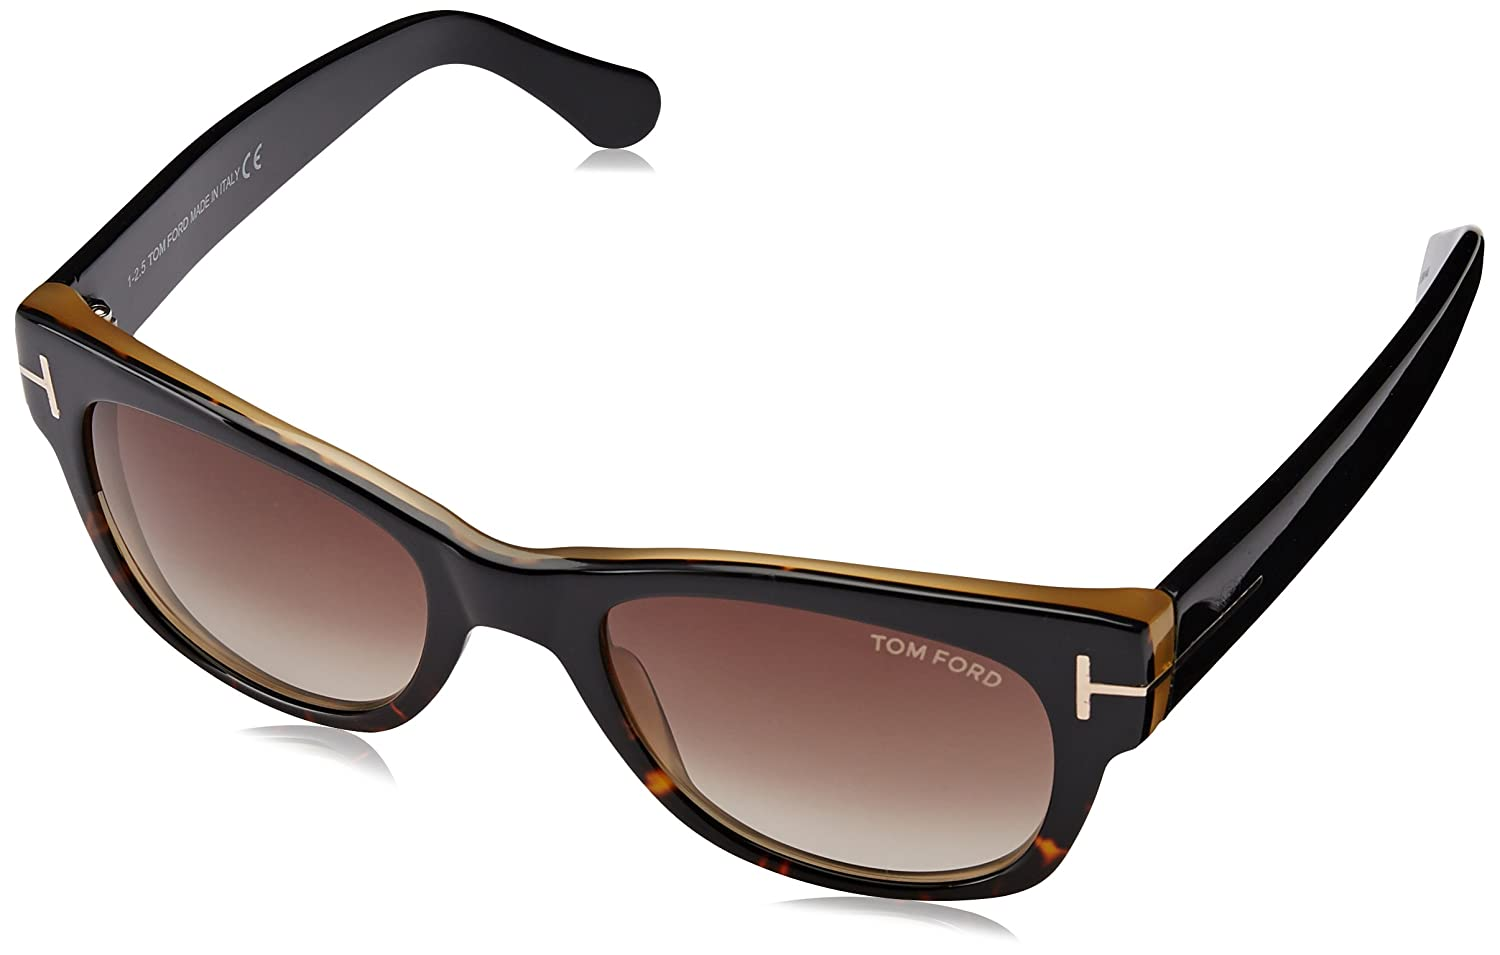 Tom Ford Sonnenbrille Cary (FT0058): Amazon.de: Bekleidung